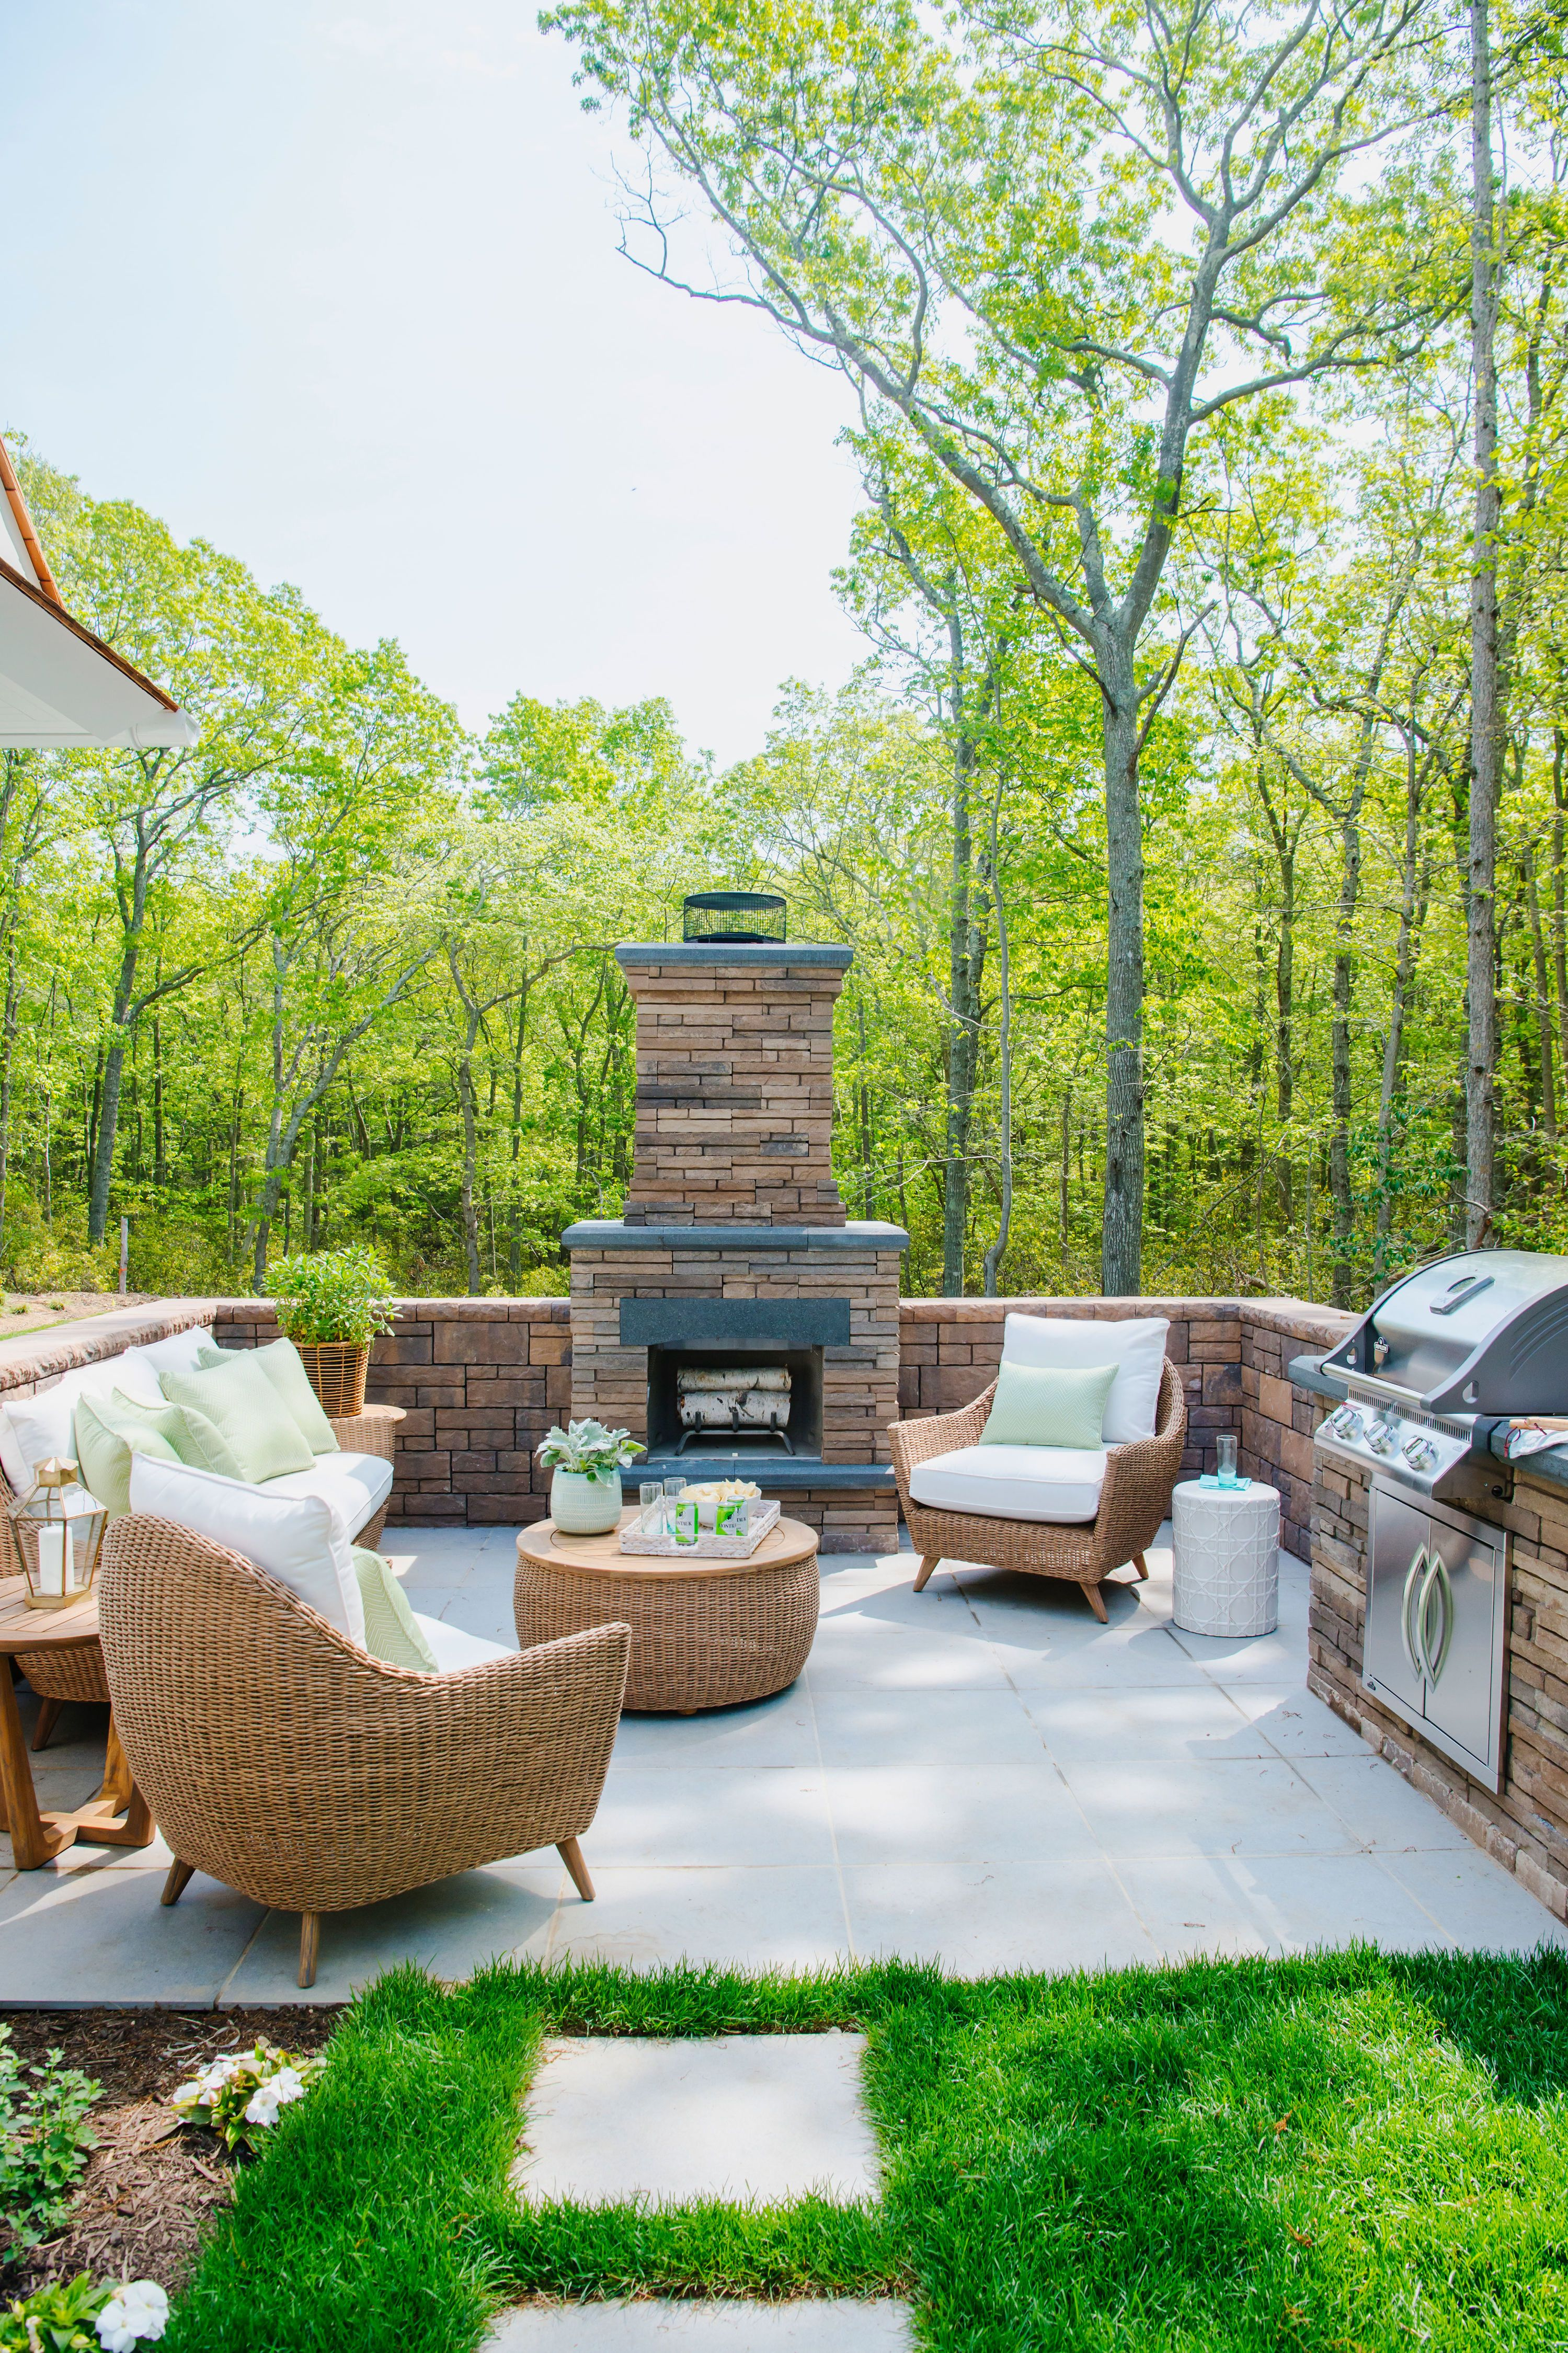 A few paces away from the sparkling oasis, a poolside patio beckons Away House Patio Designs on patio furniture designs, hgtv patio designs, concrete patio designs, front patio designs, outdoor patio designs, pool patio designs, patio door designs, basic patio designs, open patio designs, single level home patio designs, custom patio designs, garden patio designs, patio home plans designs, best patio designs, alcove designs, back patio designs, contemporary patio designs, house indoor outdoor living patio, cheap patio designs, rock patio designs,